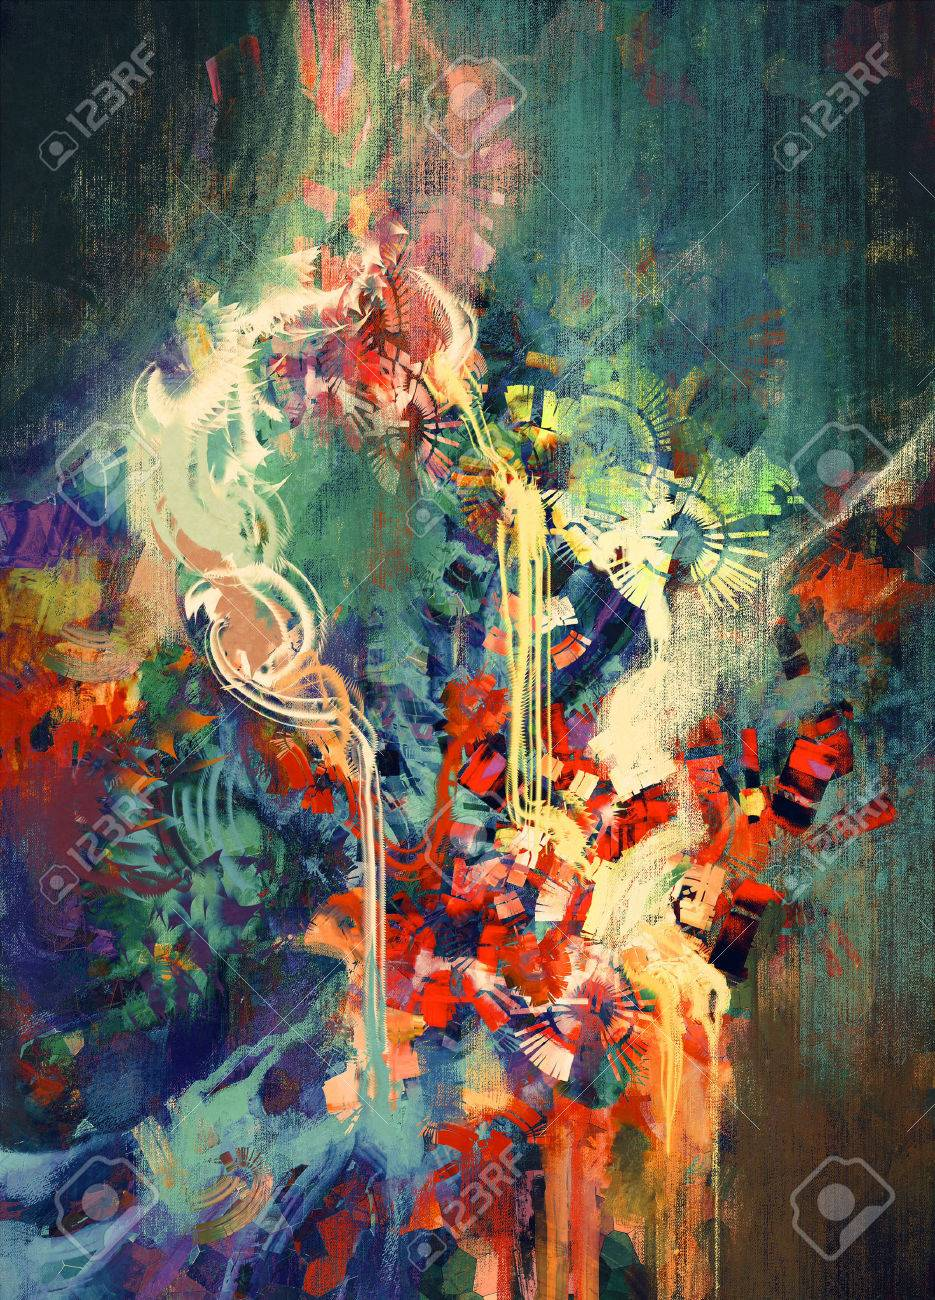 abstract colorful painting,melted coloring elements Stock Photo - 43033369